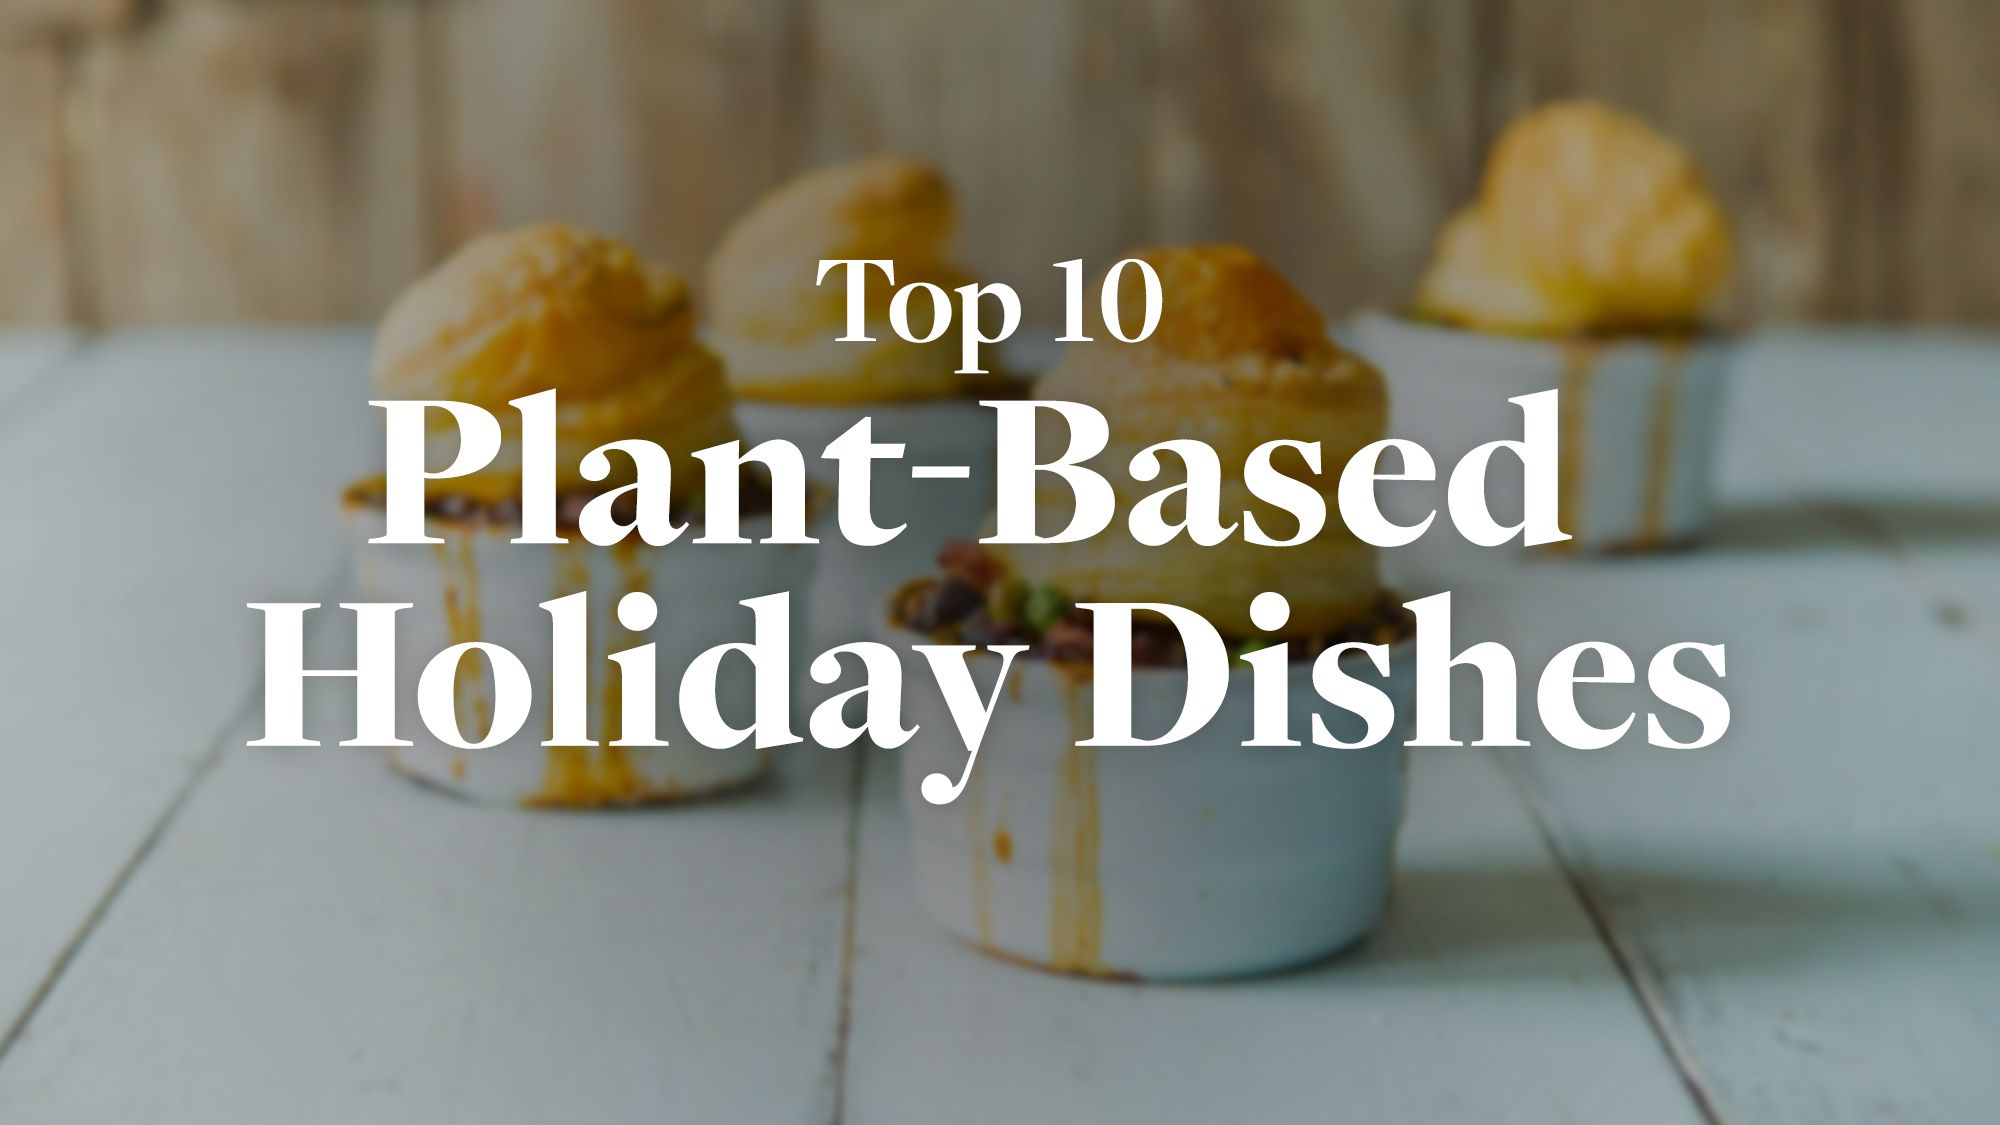 We've collected our favorite plant-based holiday recipes so you can host your plant-based holiday feasts with confidence and ease.